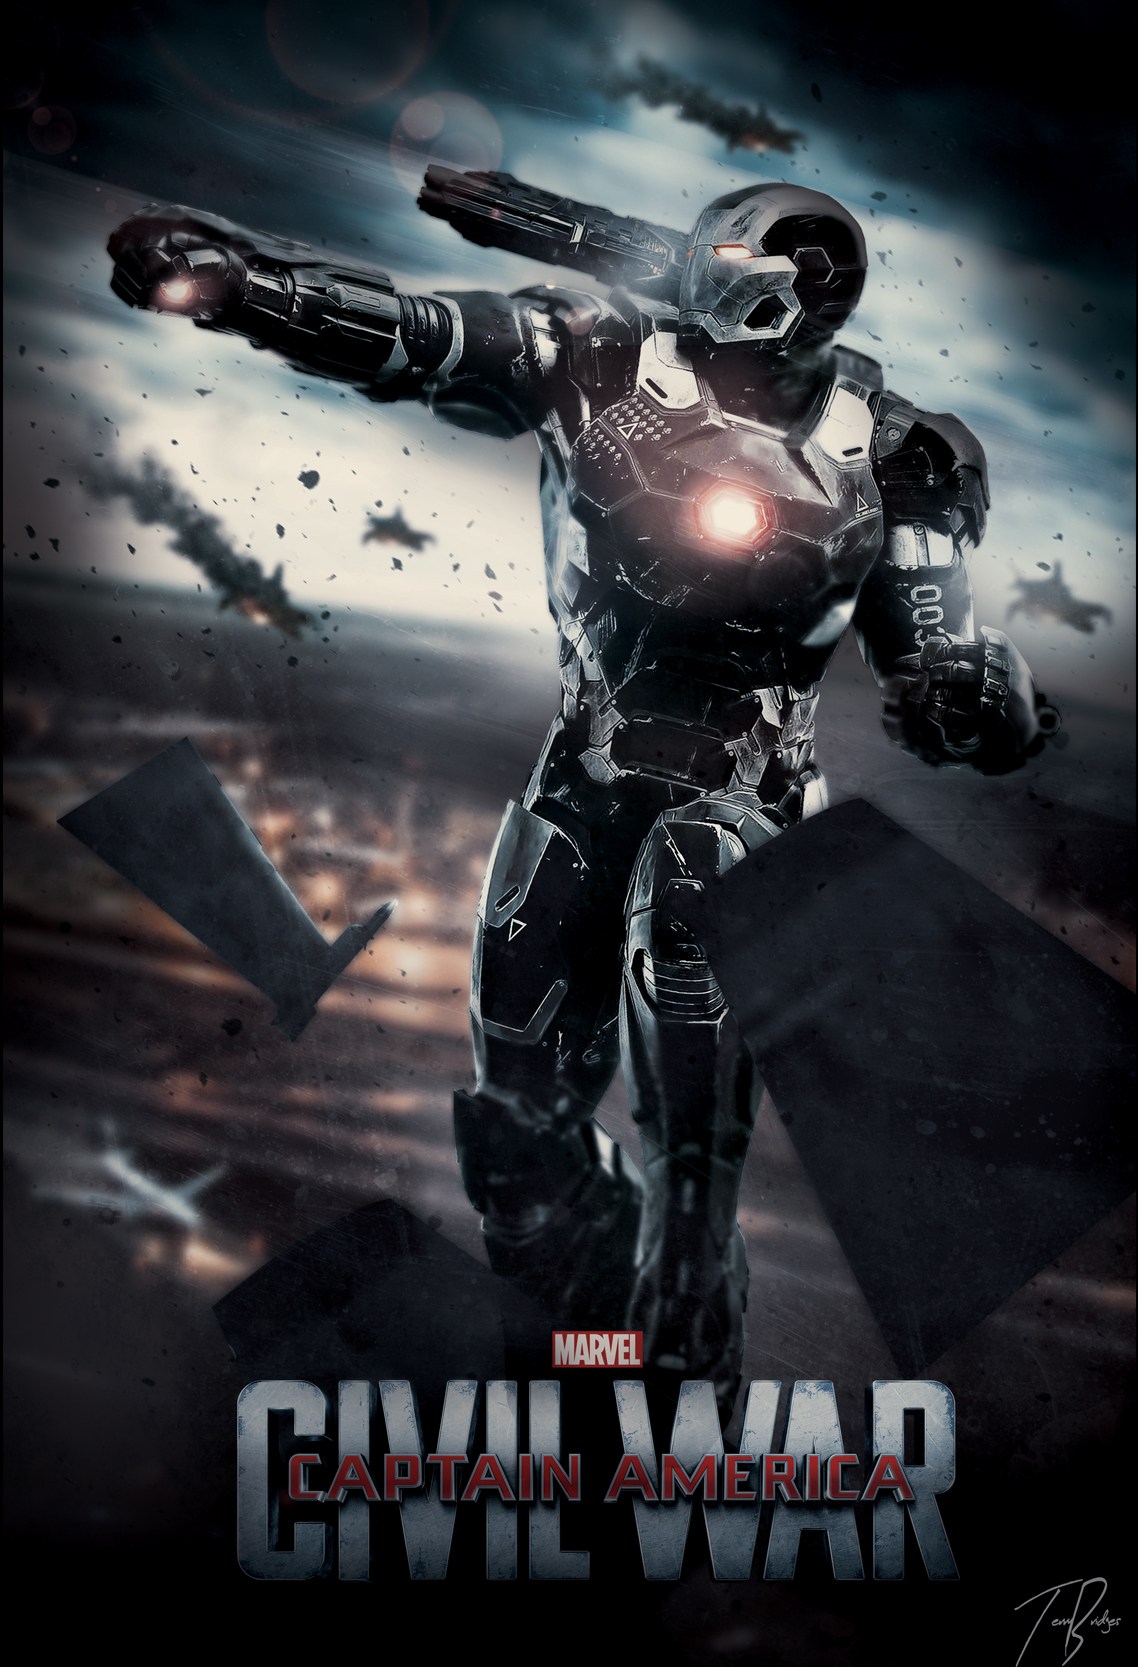 Captain America Civil War Iron Man Team Wallpapers Awesome Marvel o